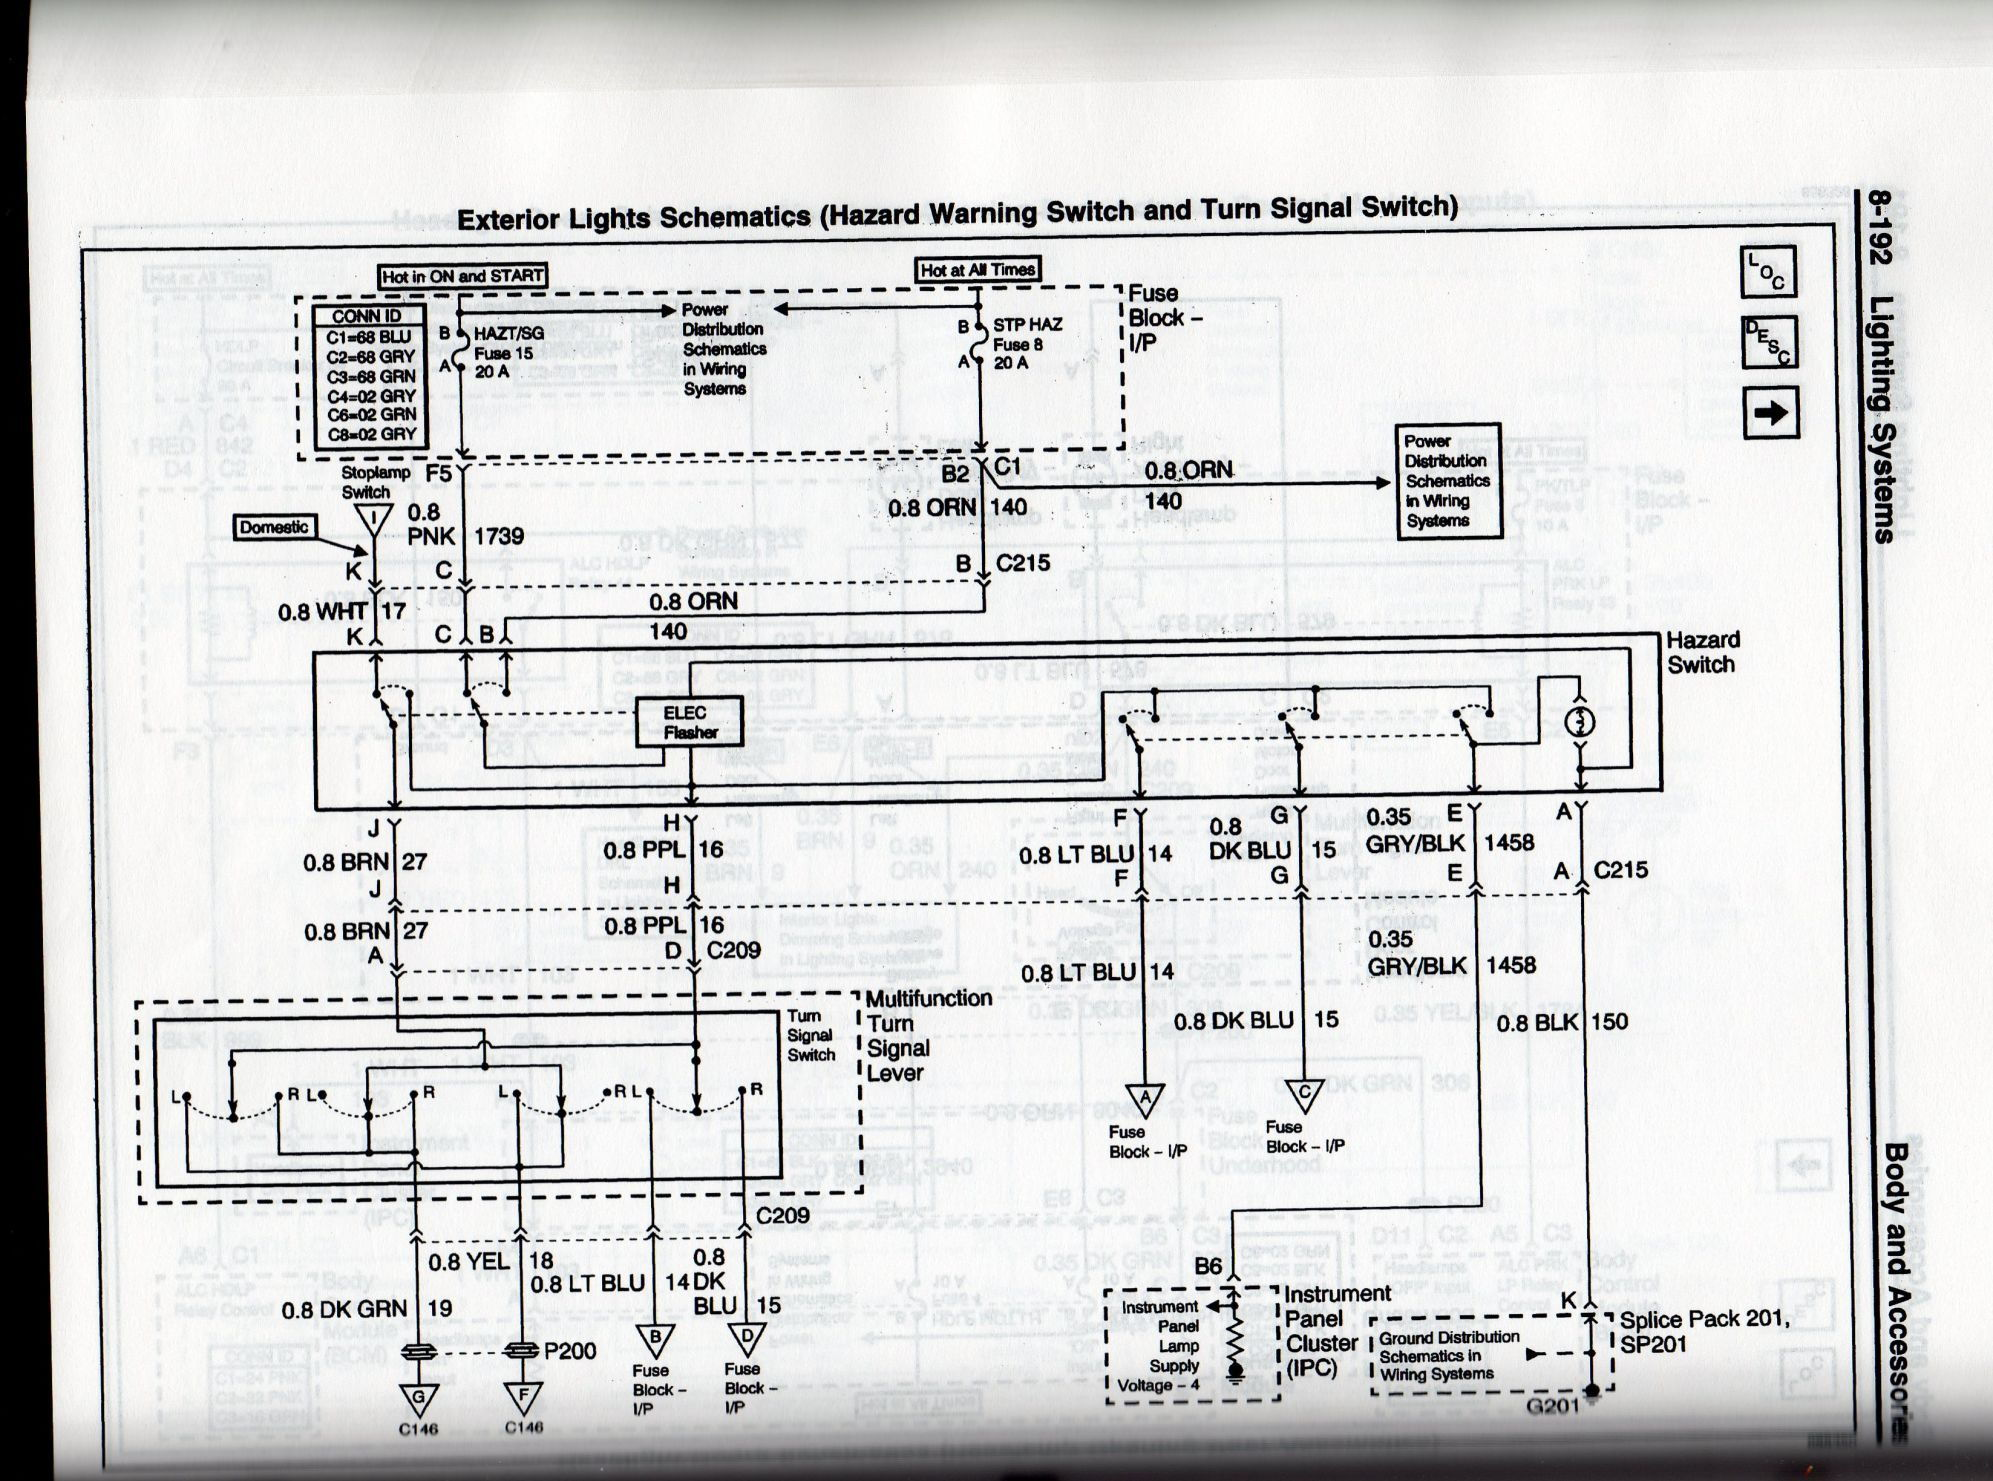 Hazard And Multifunction Switches F F Fc A Ca A B D B D Fff Eee Cbbc Da B B D A C on C5 Corvette Headlight Diagram